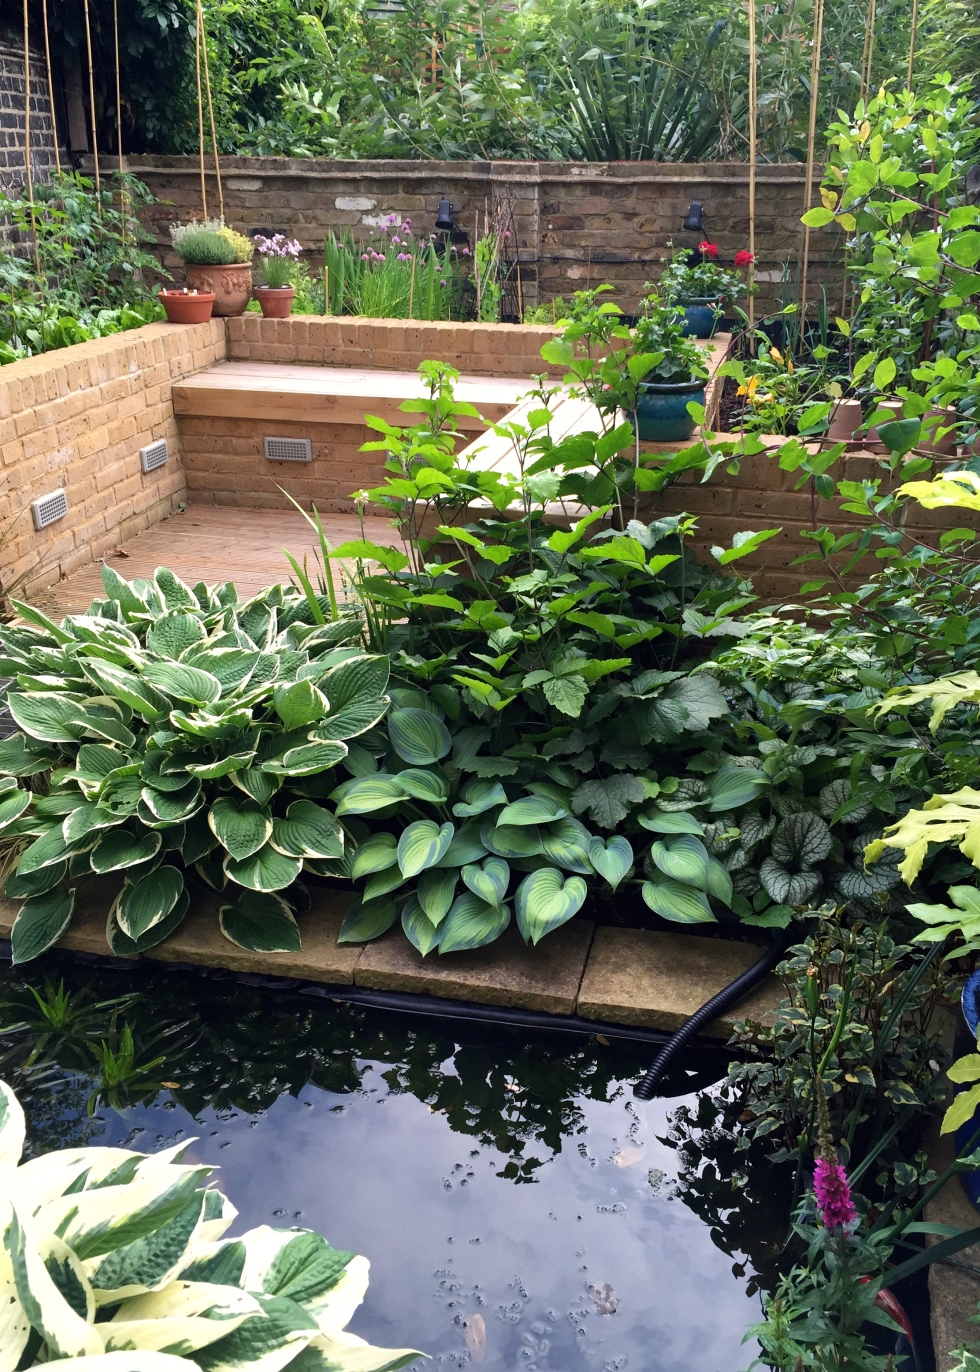 Vegetable garden from across the pond, London, June 2015